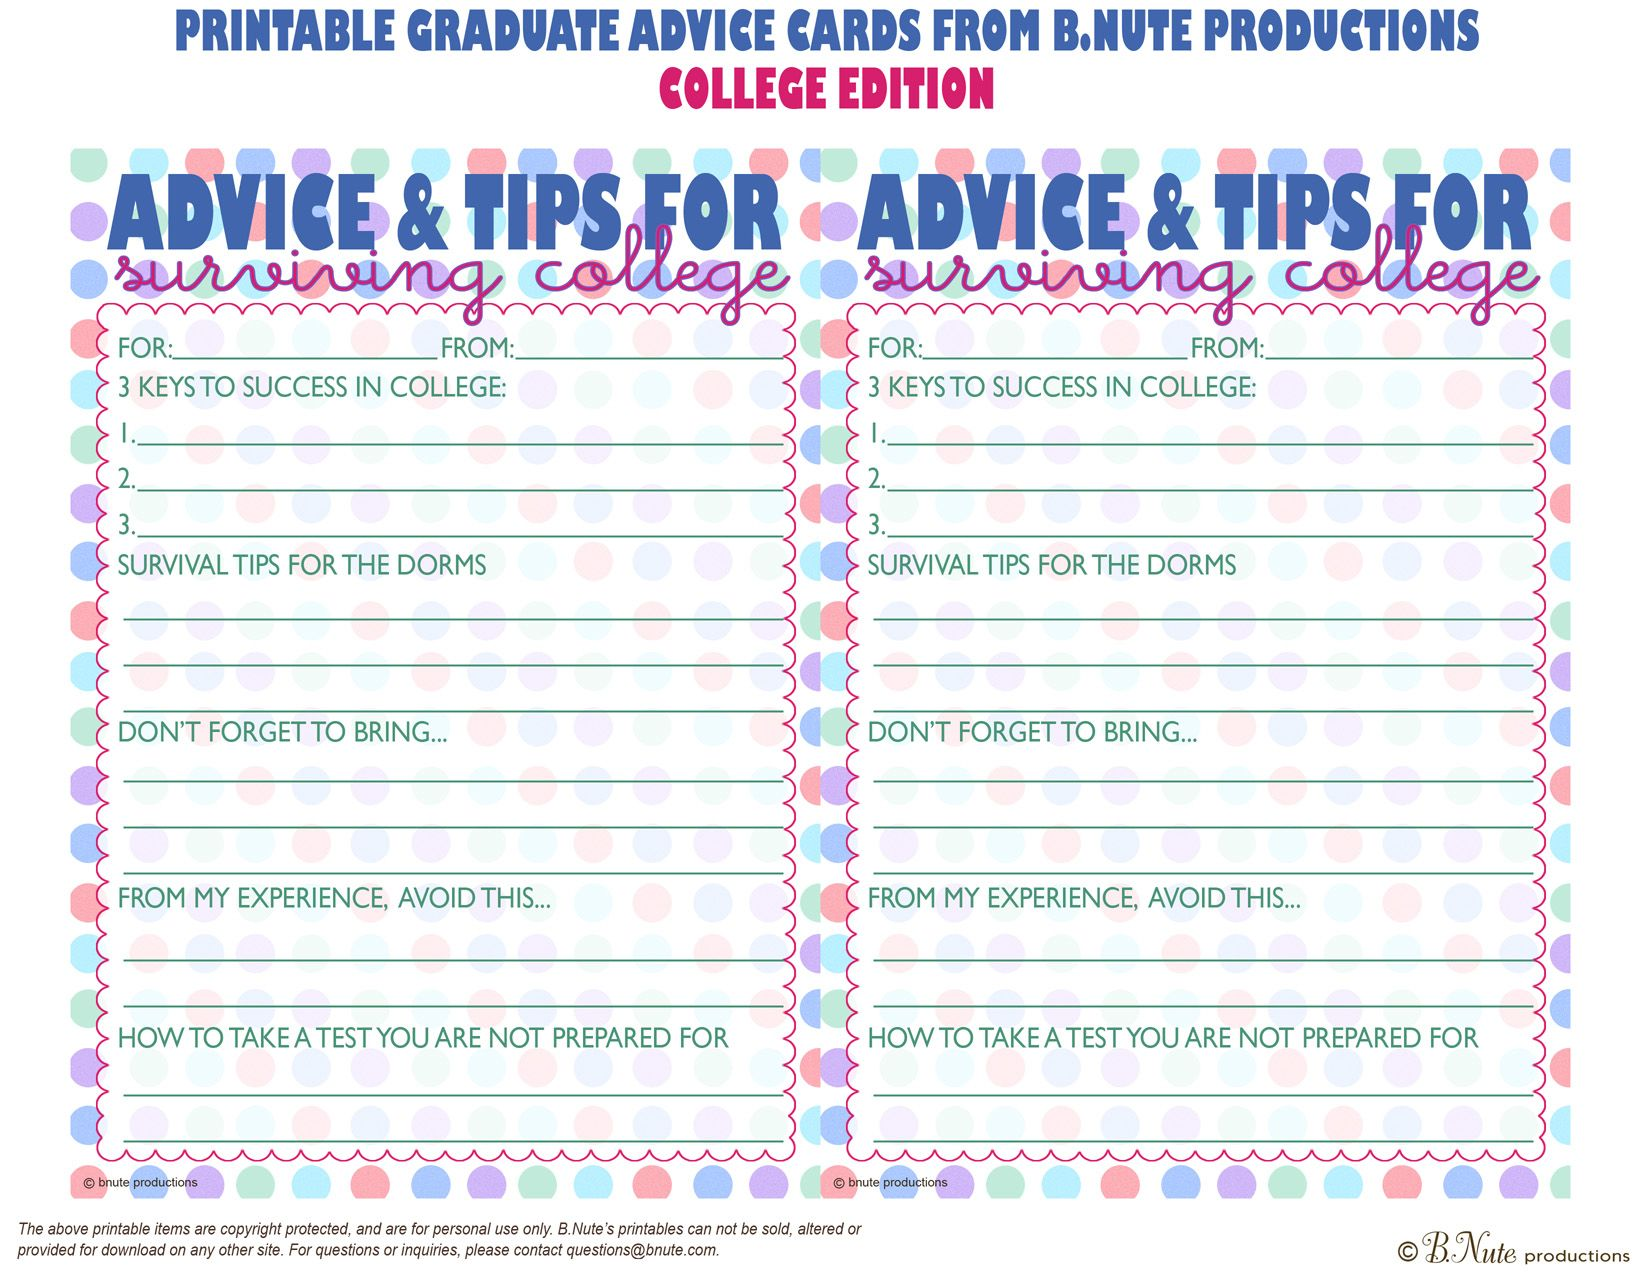 Free Printable Graduate Advice Cards